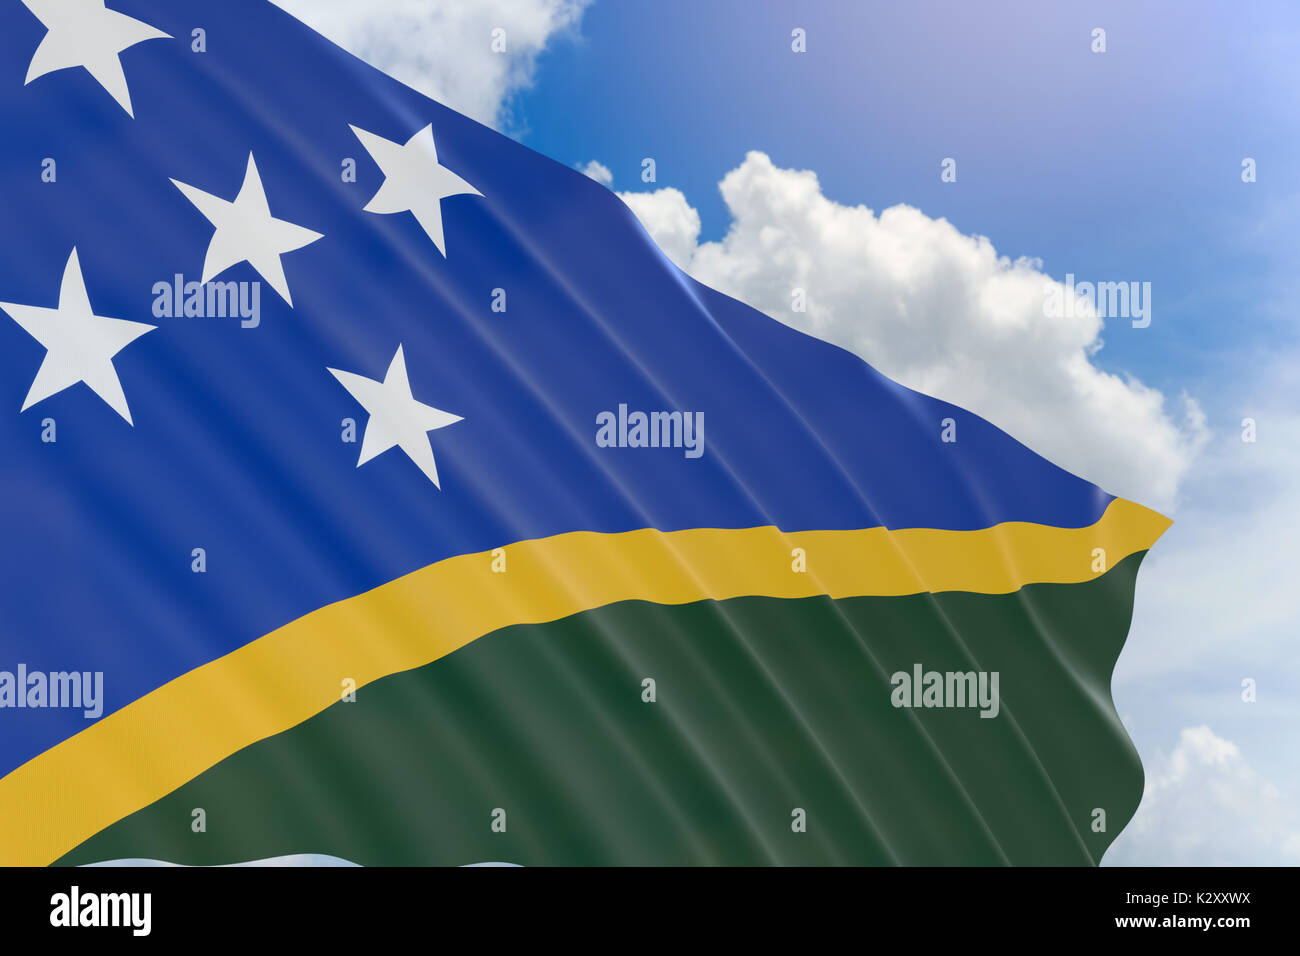 3D rendering of Solomon Islands flag waving on blue sky background, The Solomon Islands, a nation of hundreds of islands in the South Pacific country  - Stock Image